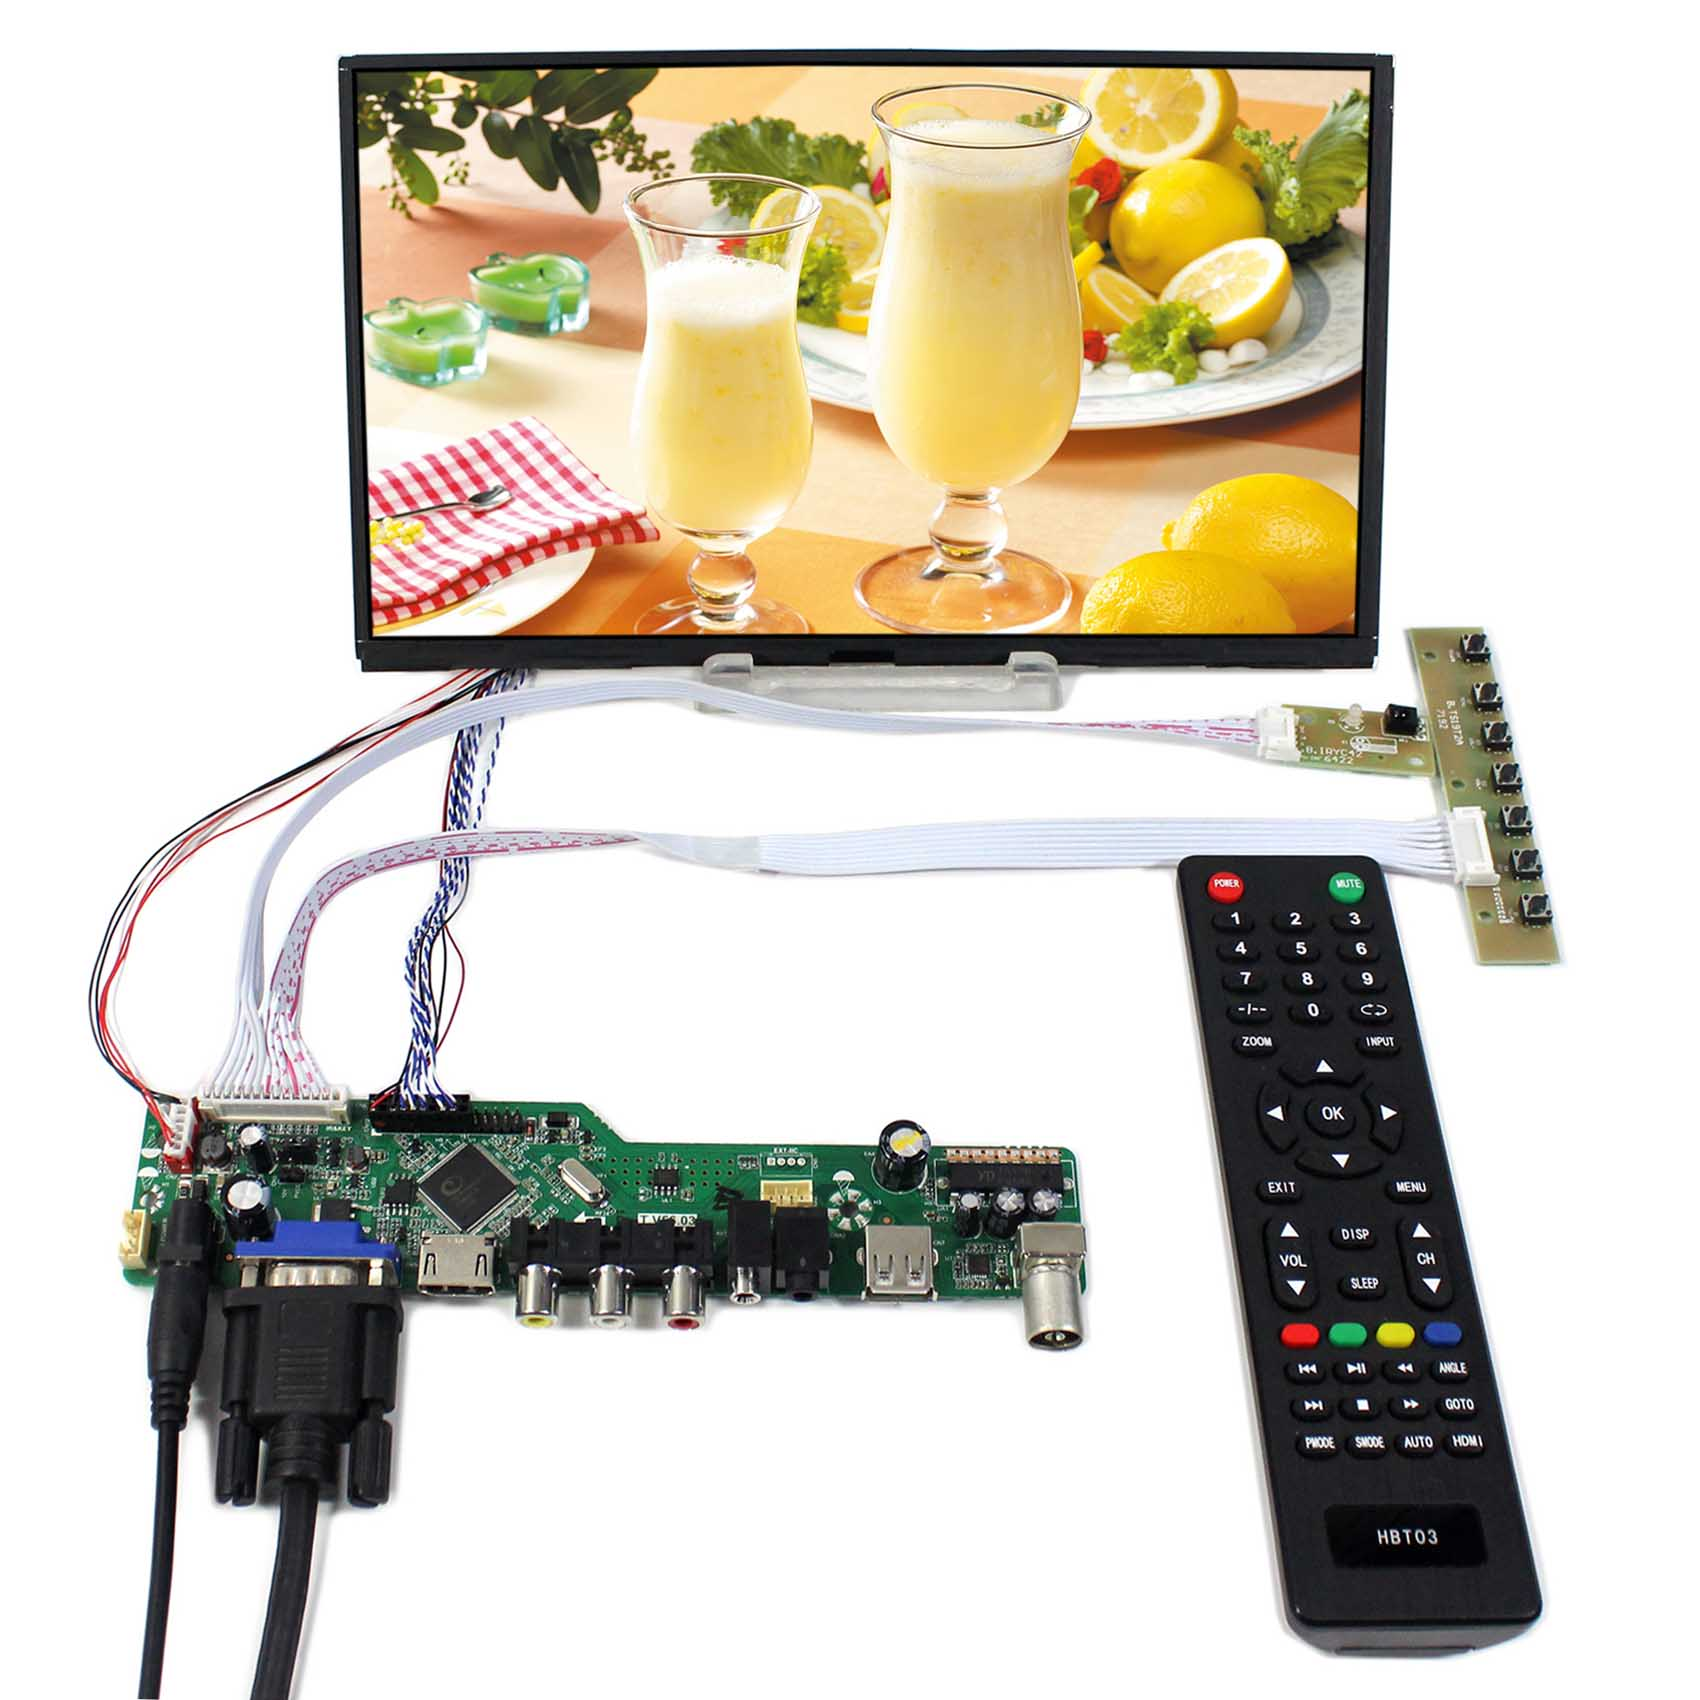 TV HDMI VGA AV USB AUDIO LCD controller Board+10.1inch B101XAN01 IPS lcd panel t v56 03 vga hdmi av audio usb tv lcd controller board for b154pw01 b154pw02 1440x900 ccfl lvds lcd ad board raspberry pi